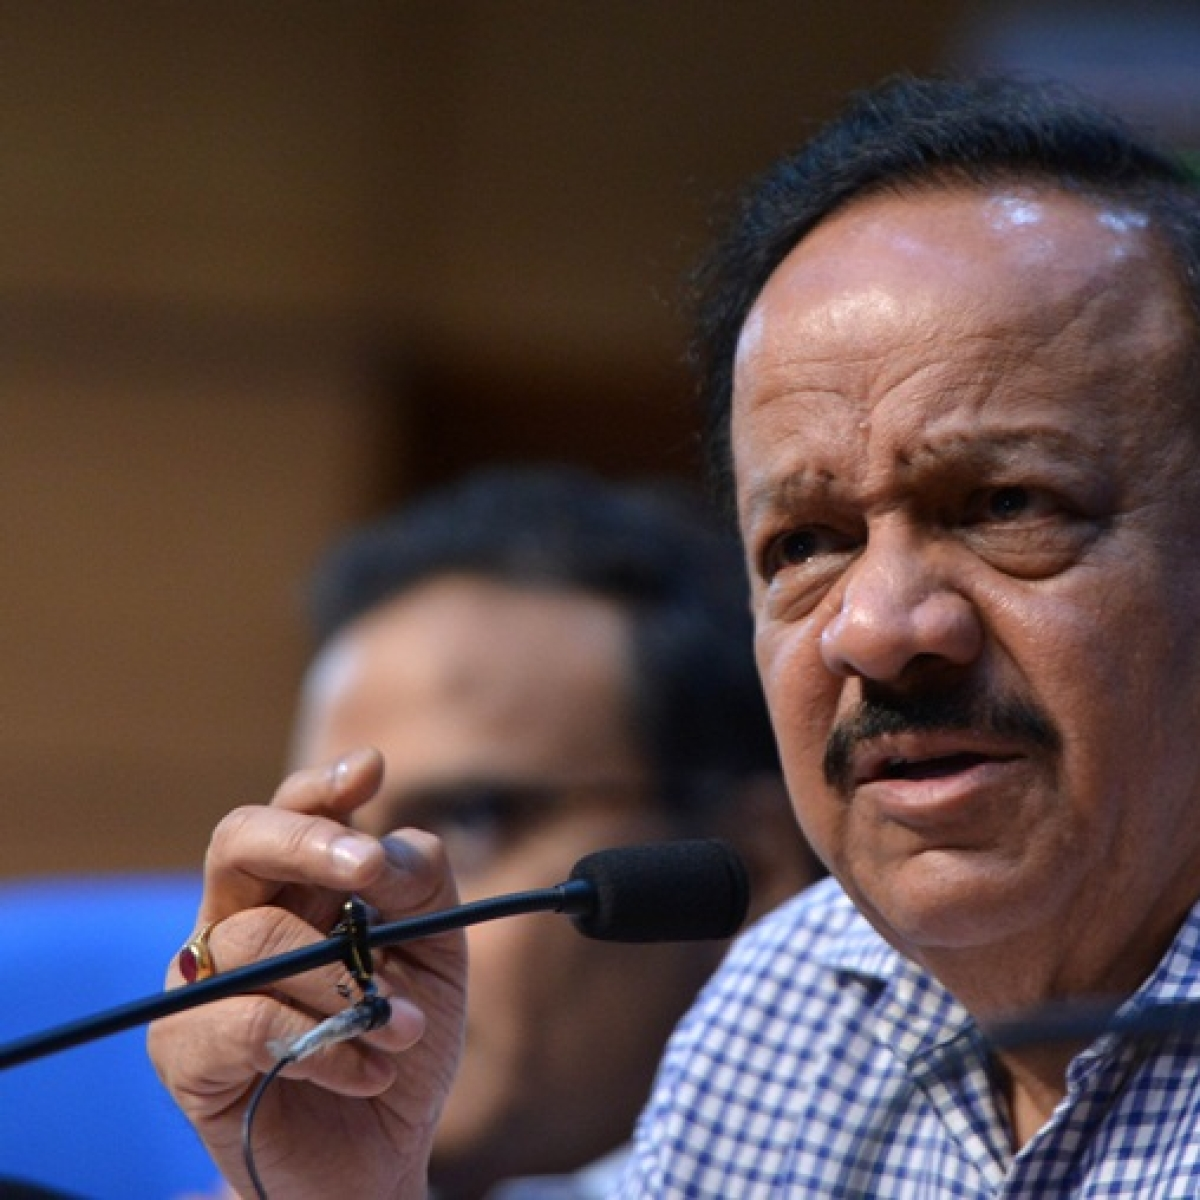 Health Minister Harsh Vardhan orders 'immediate replacement' of Medical Superintendent of AIIMS Trauma Centre